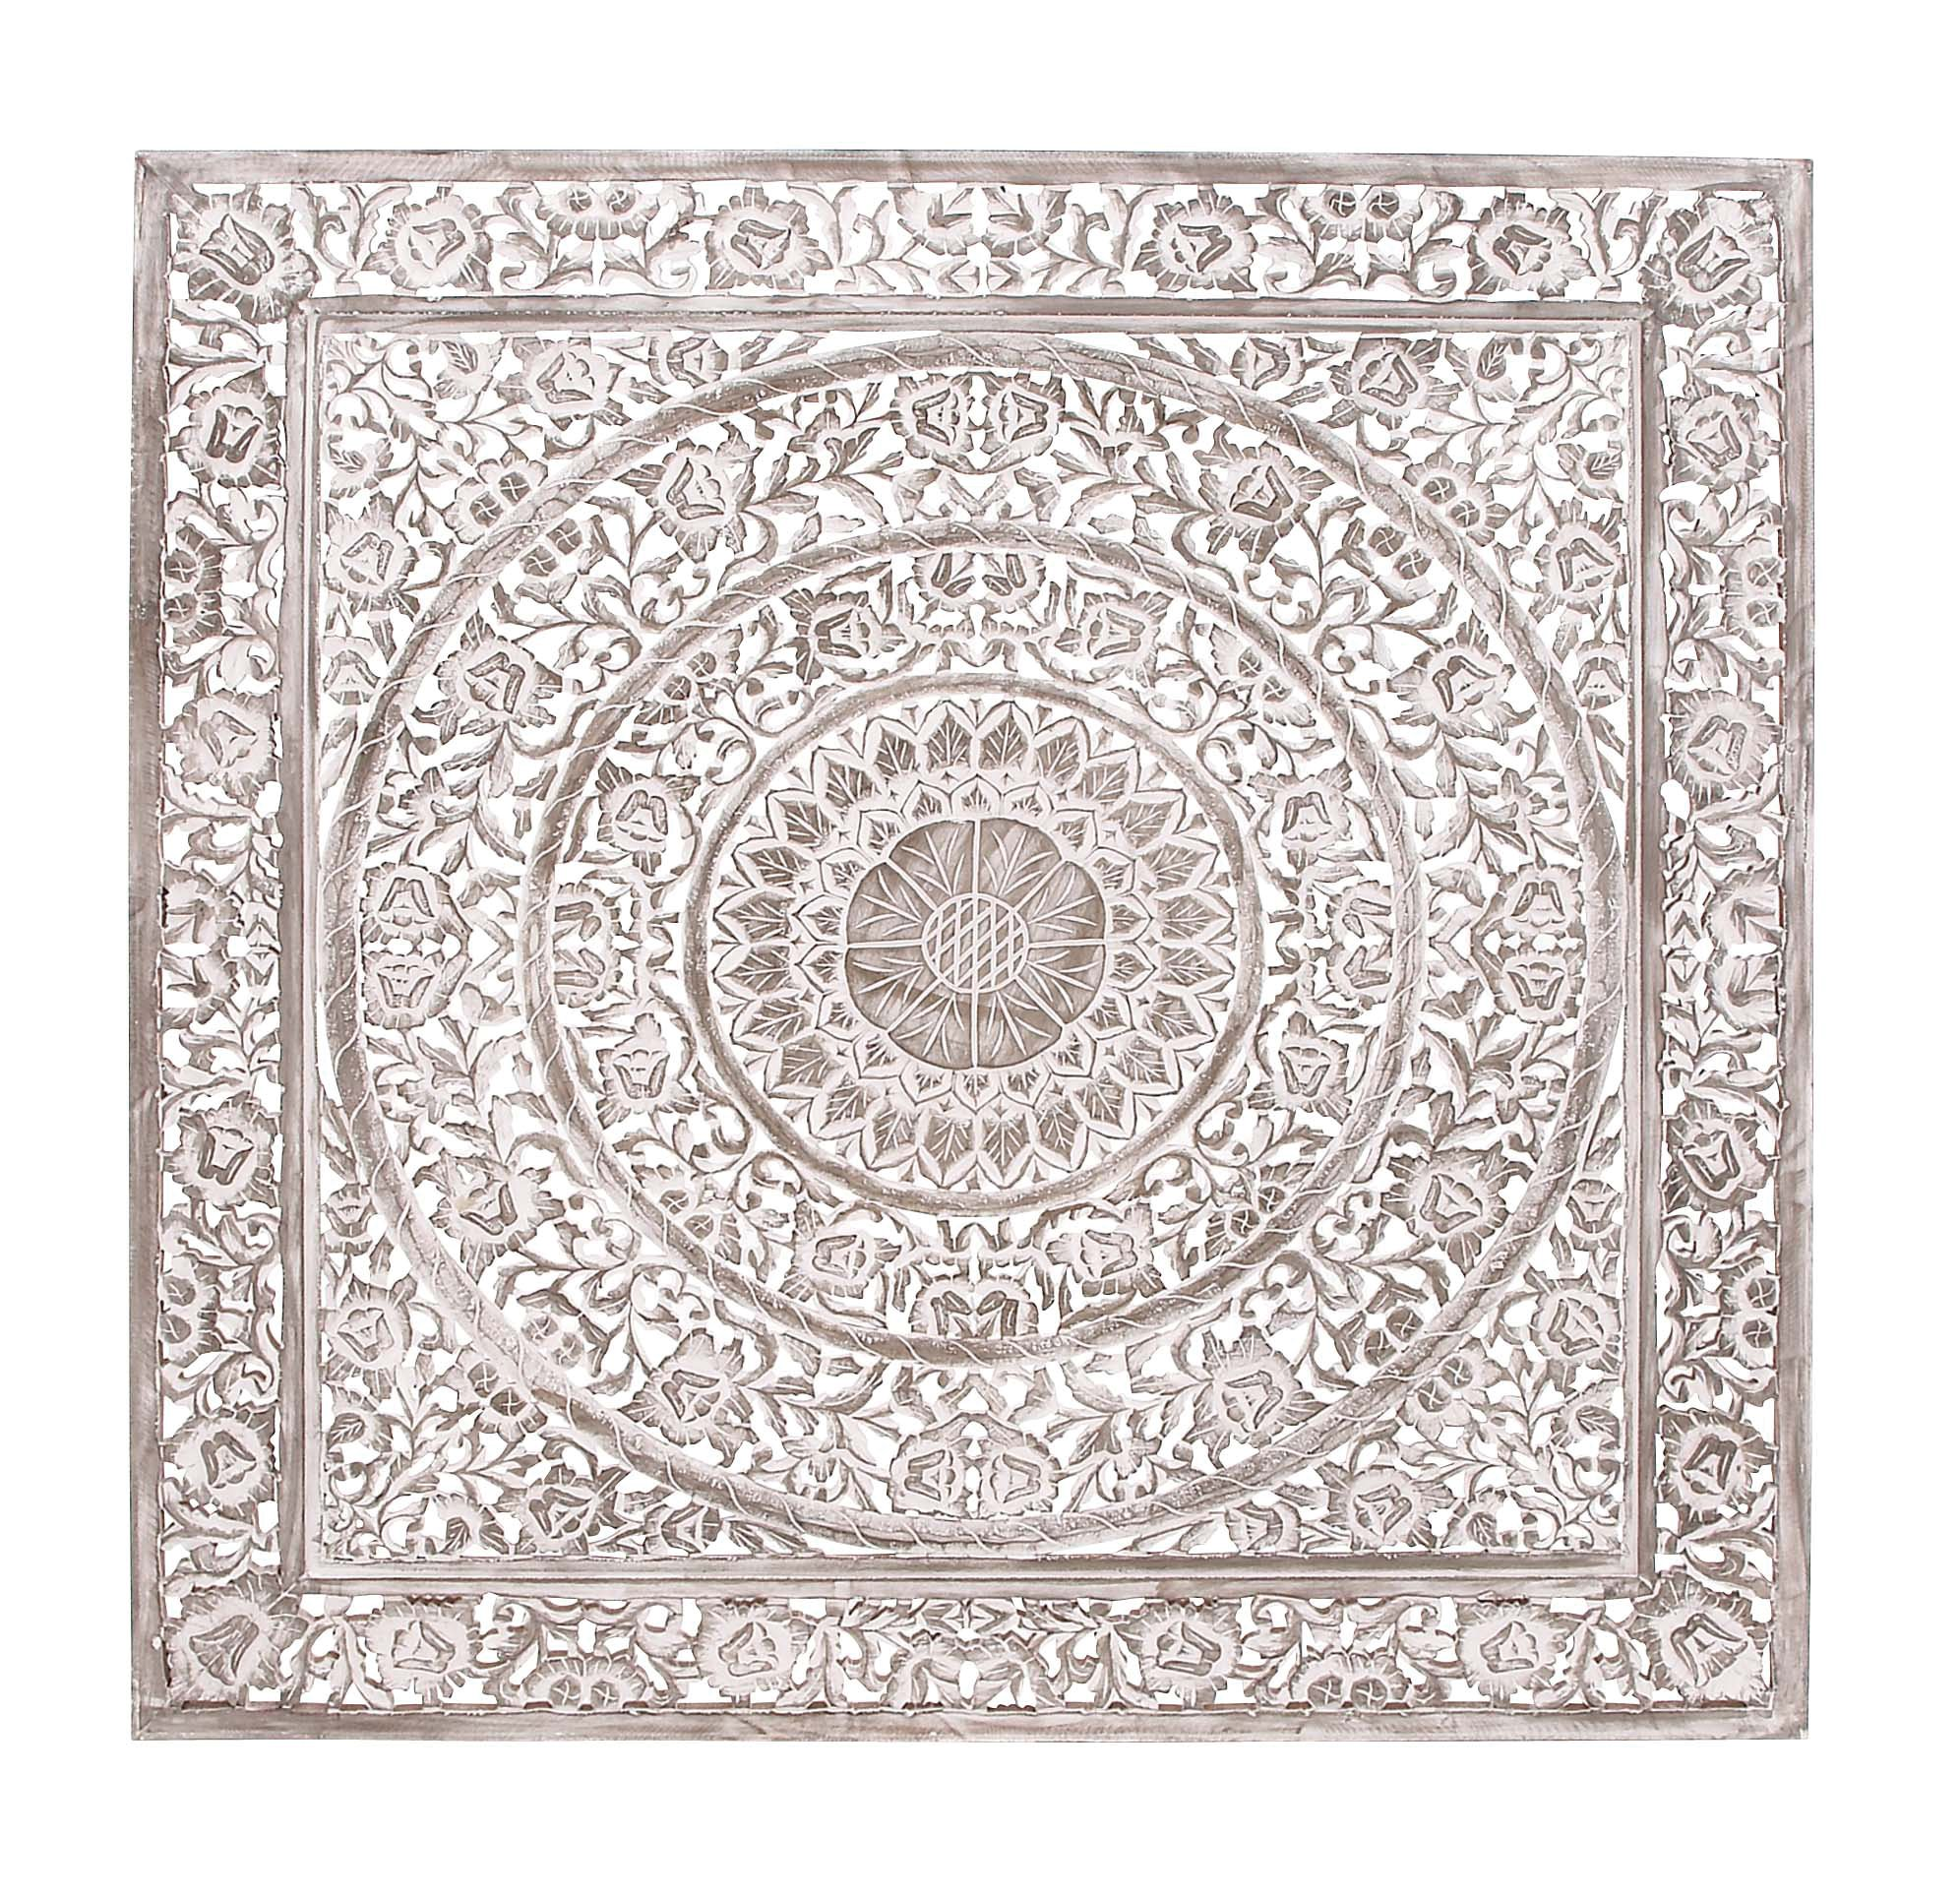 Deco 79 Wood Carved Wall Panel, 60 by 60''